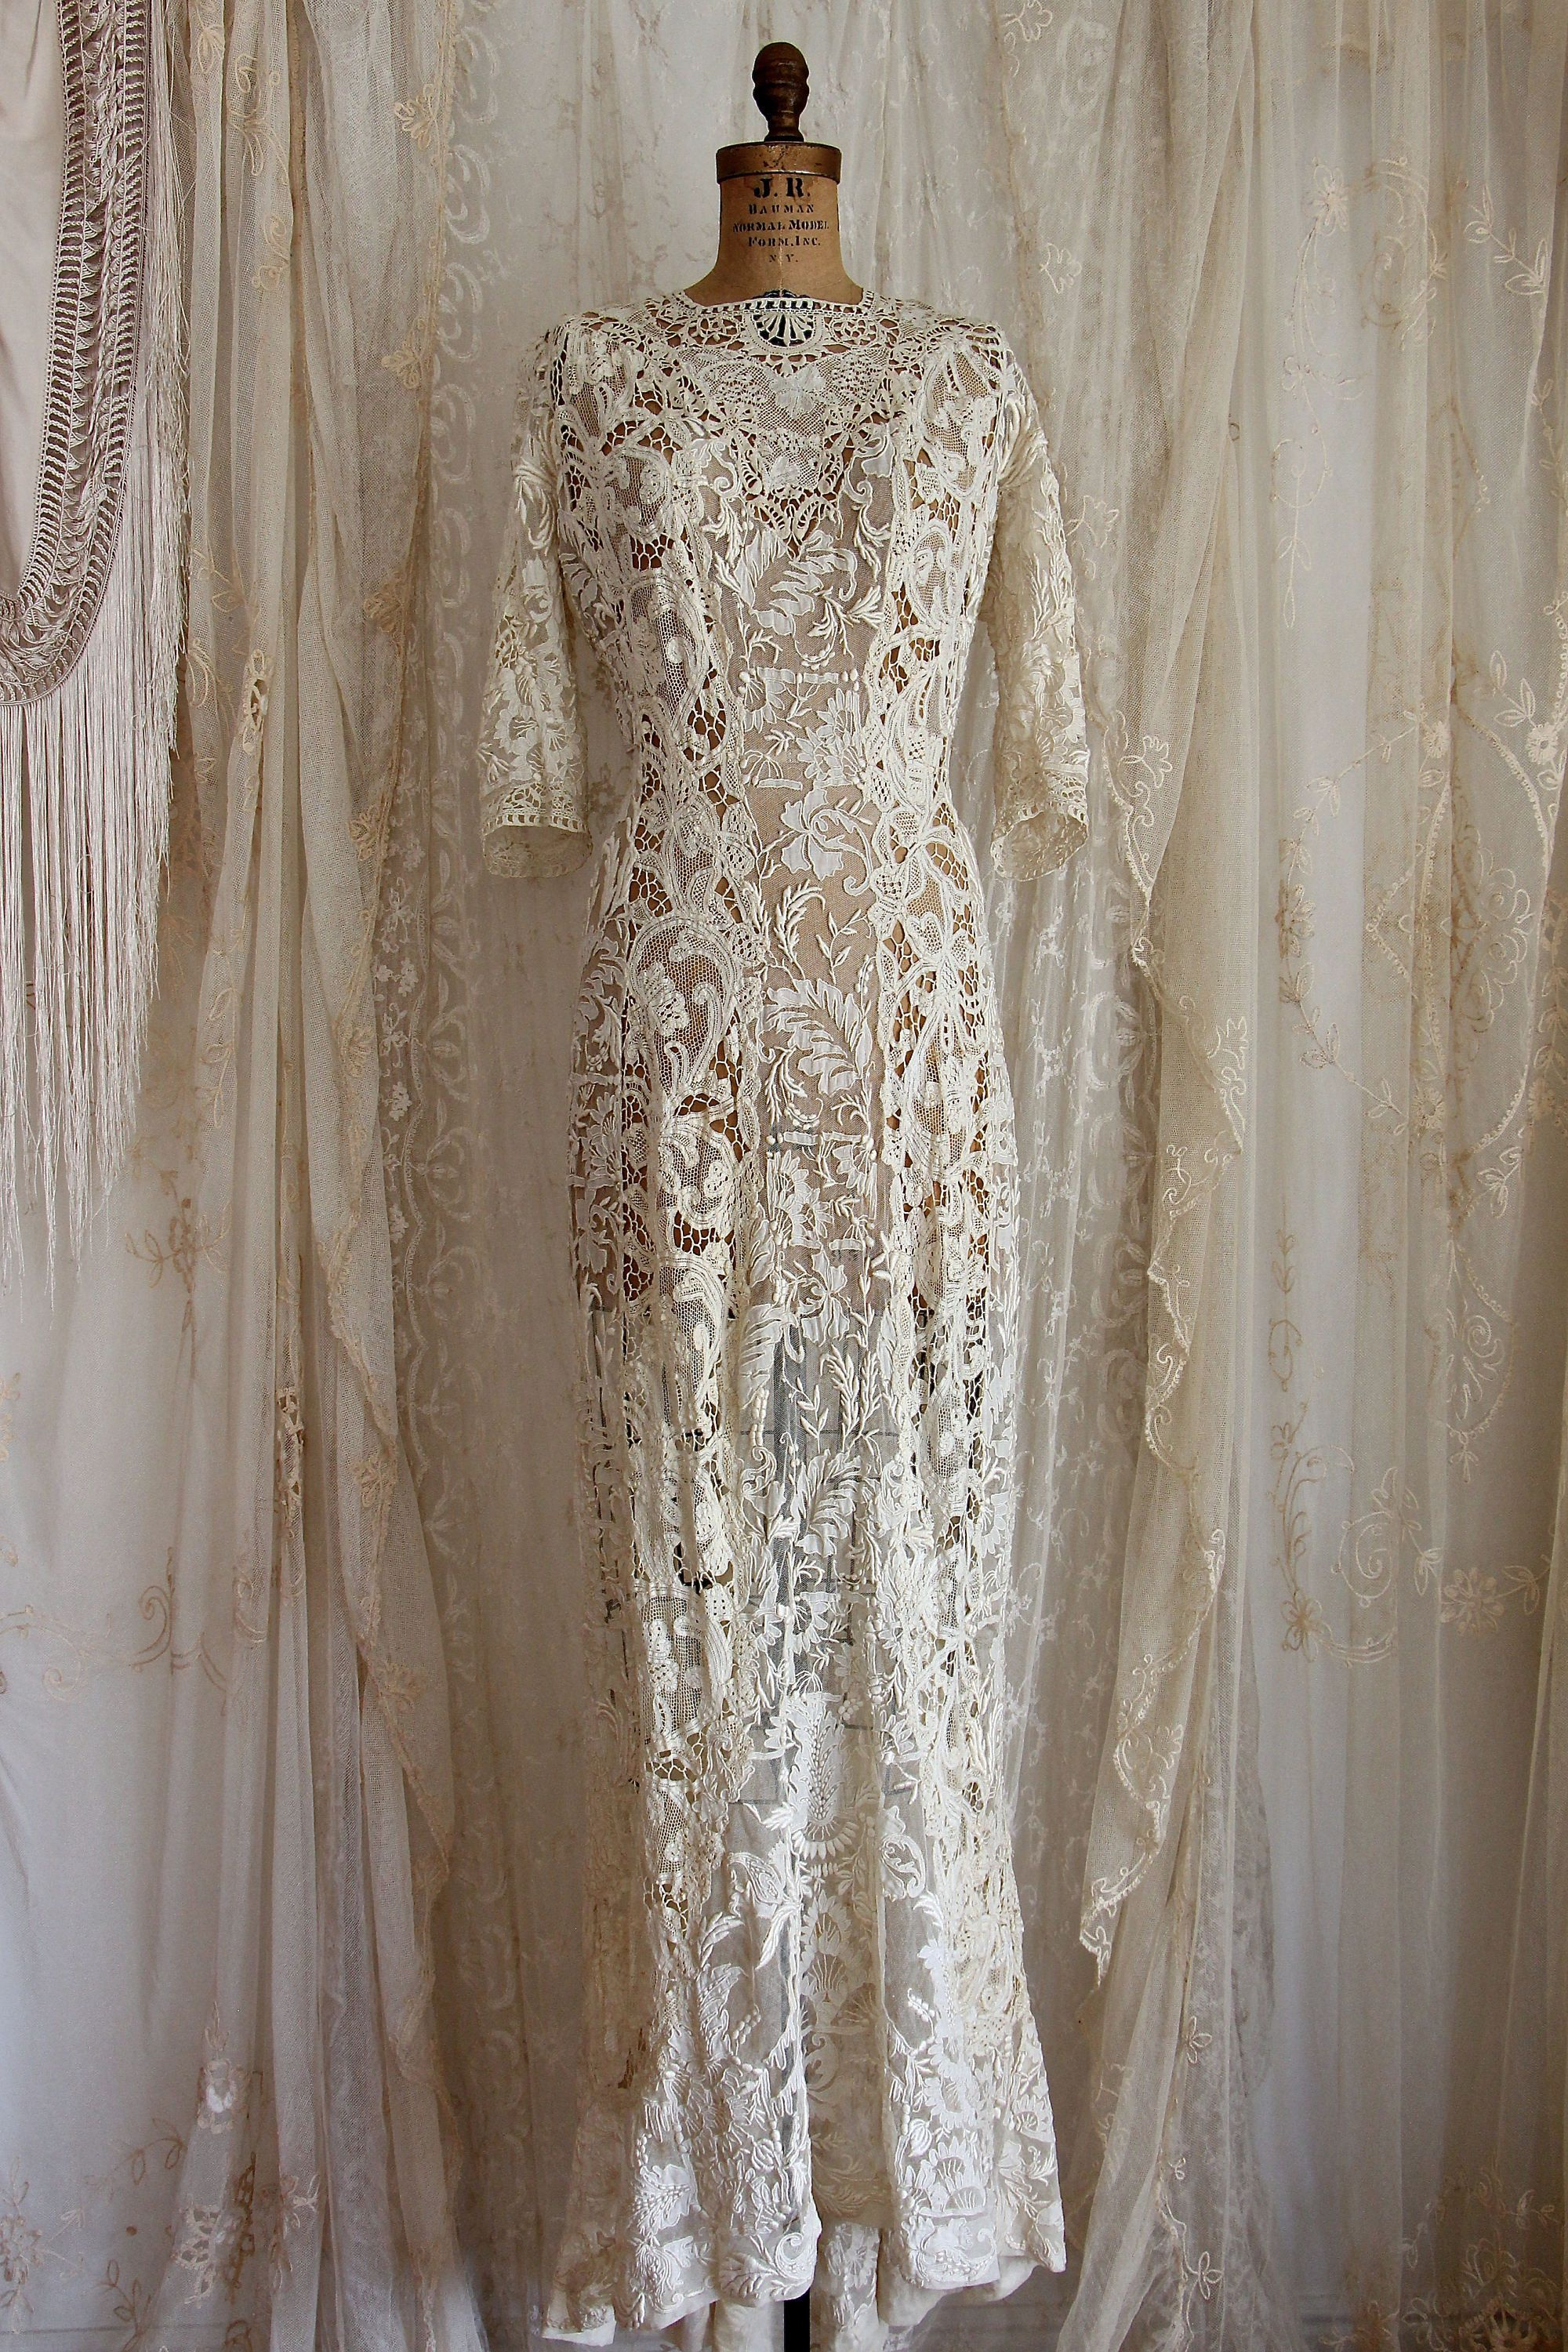 Breathtaking elaborate antique lace wedding gown museum